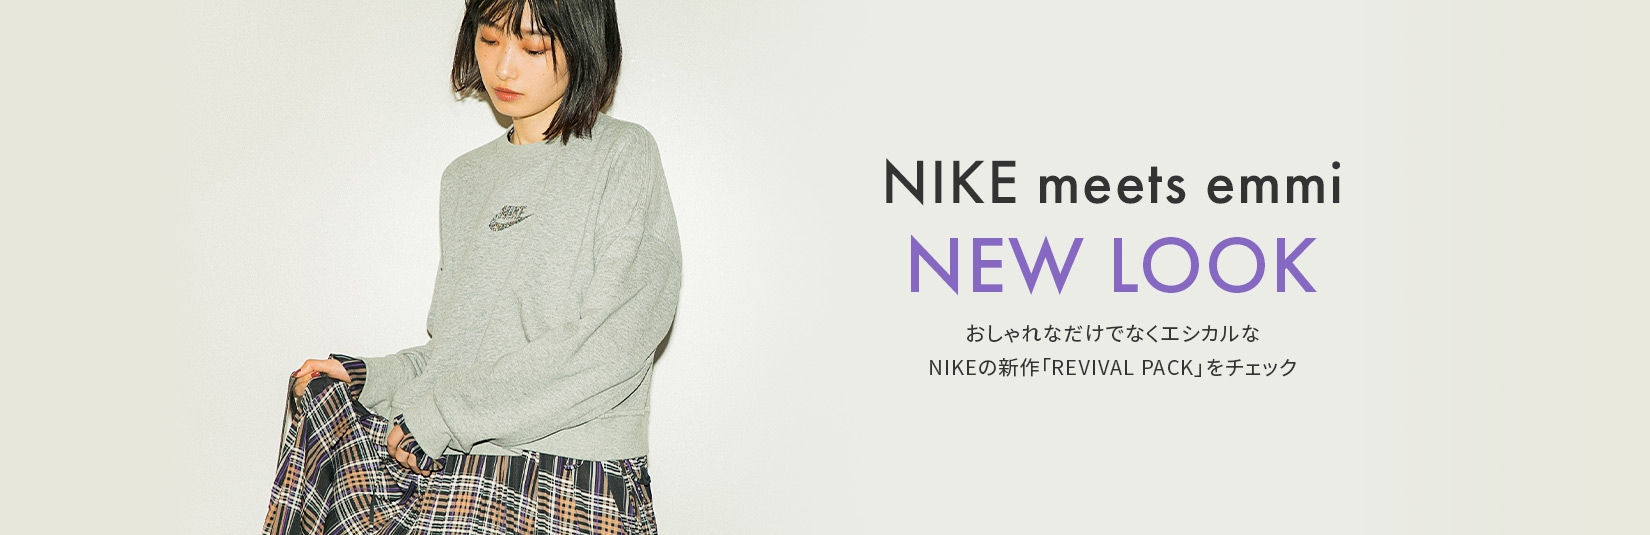 NIKE meets emmi NEW LOOK 「REVIVAL PACK」